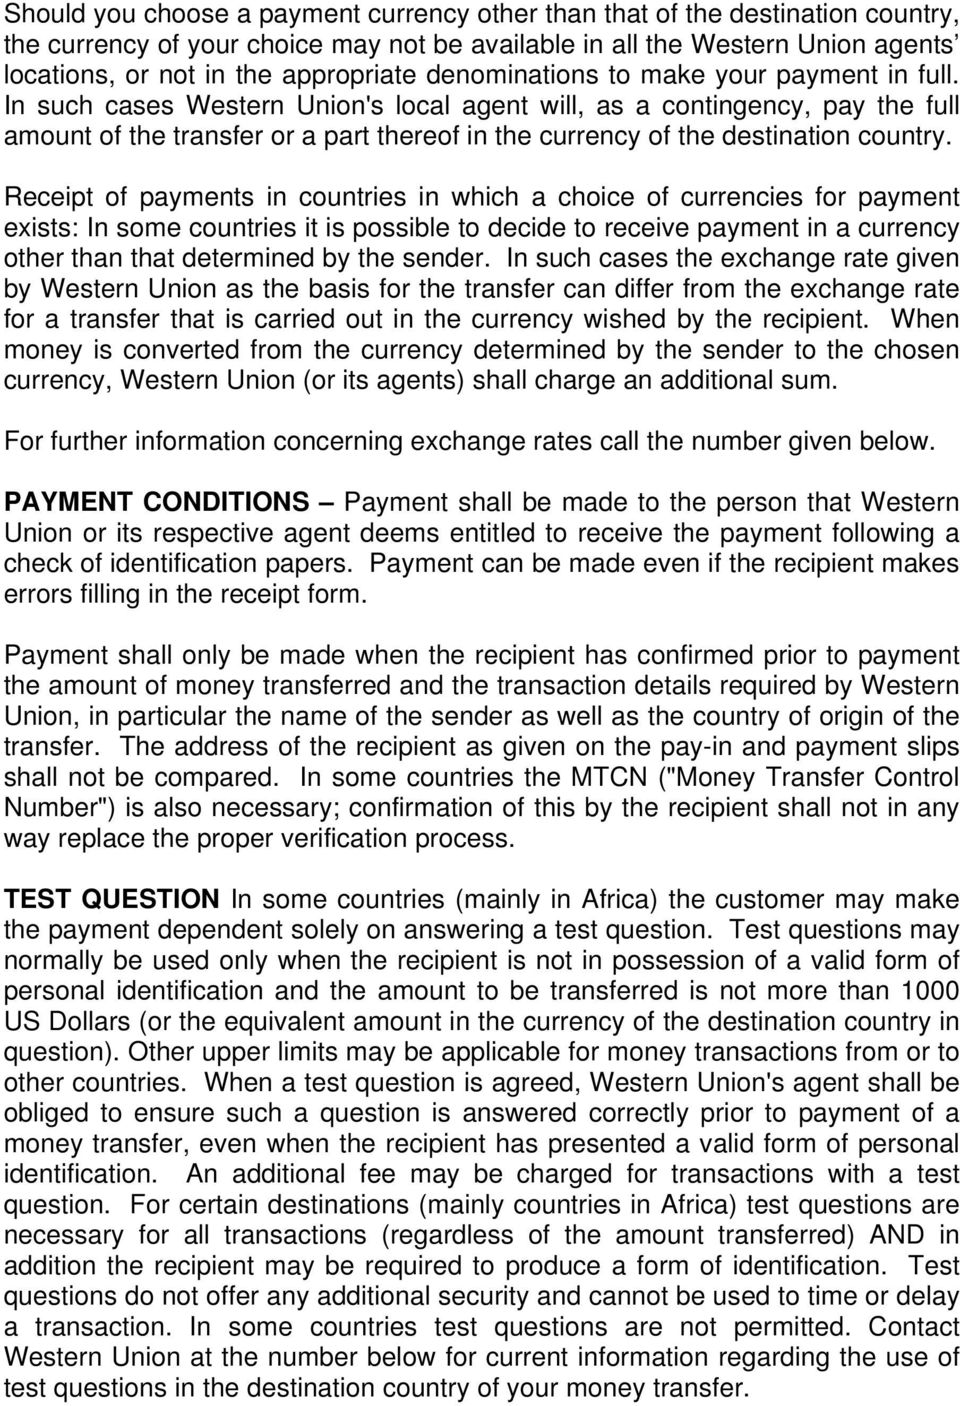 THE WESTERN UNION MONEY TRANSFER SERVICE (THE SERVICE